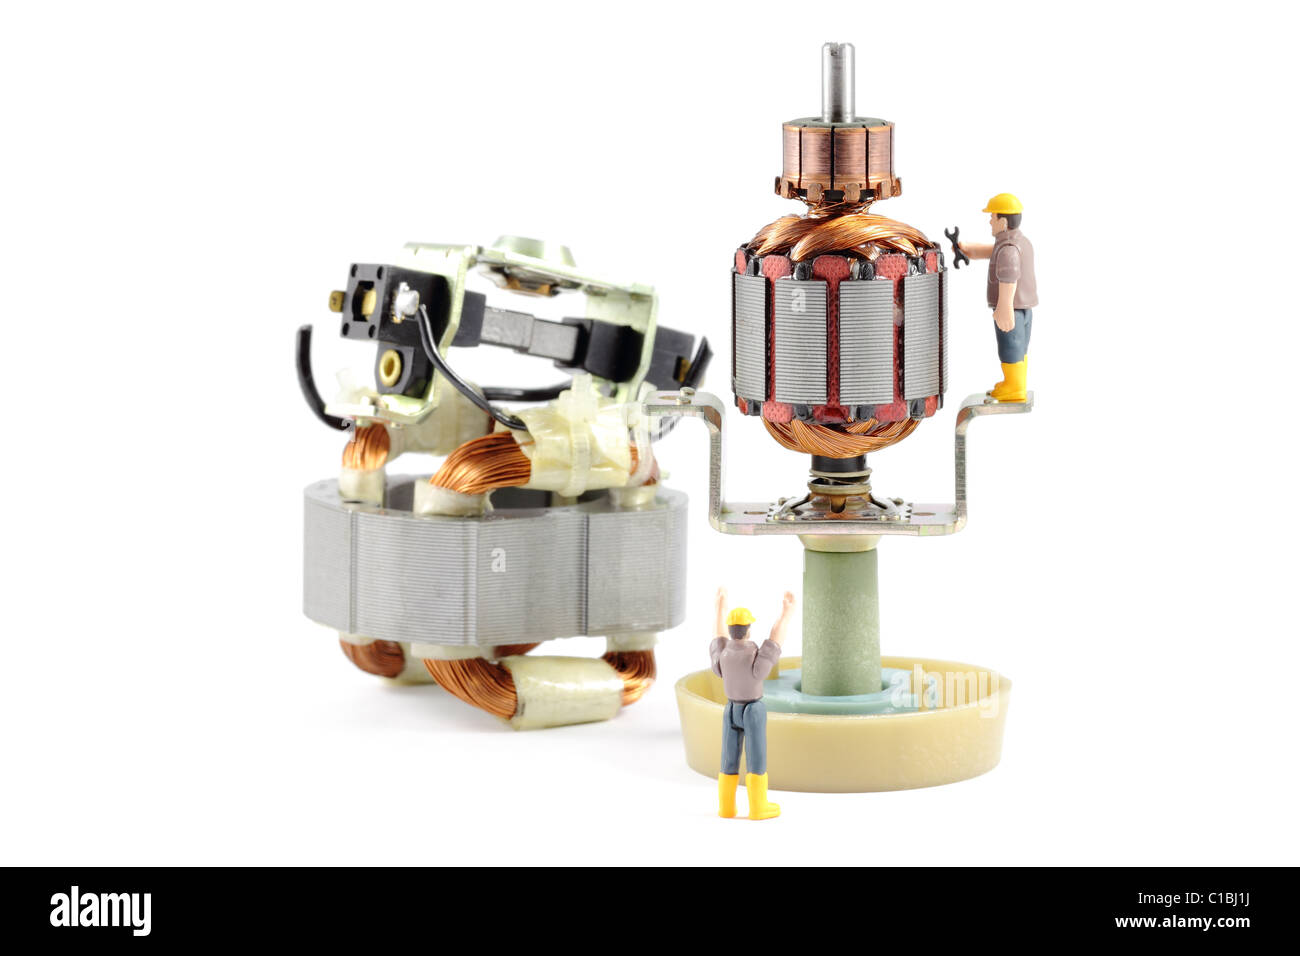 Electric Motor Repair - Macro photograph of a disassembled electric motor being worked on by two tiny toy engineers, - Stock Image